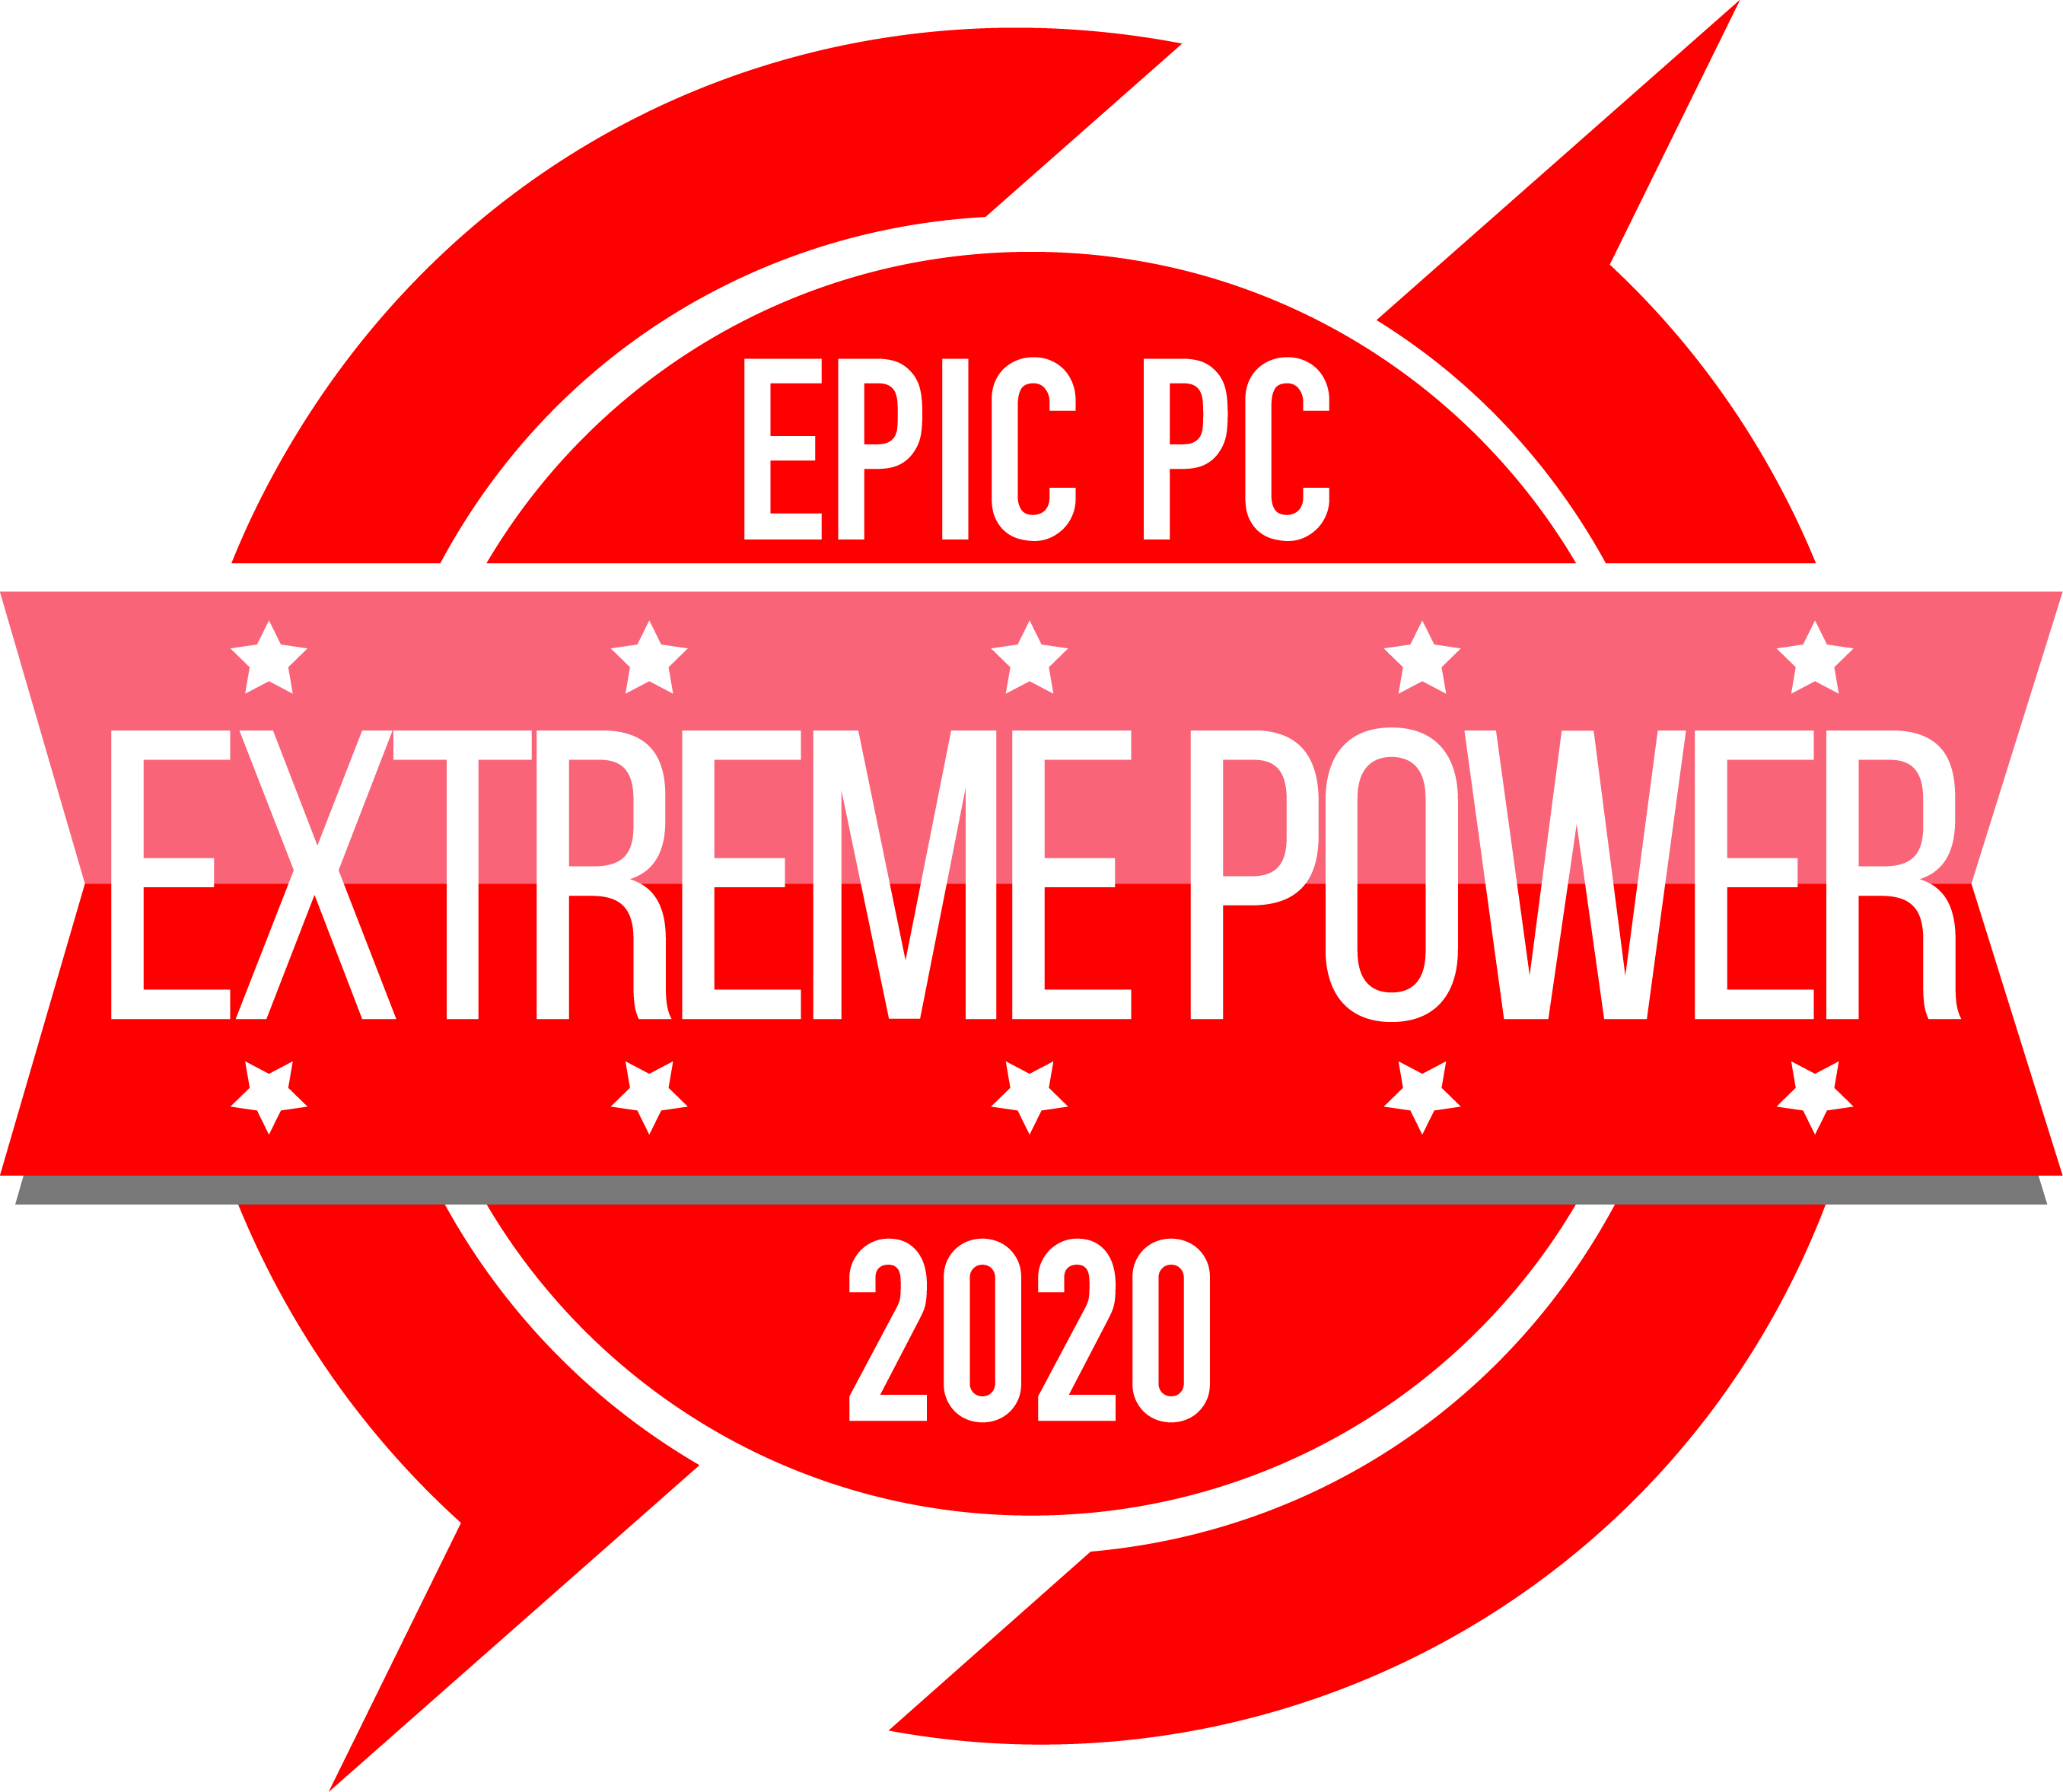 EPIC PC EXTREME POWER AWARD